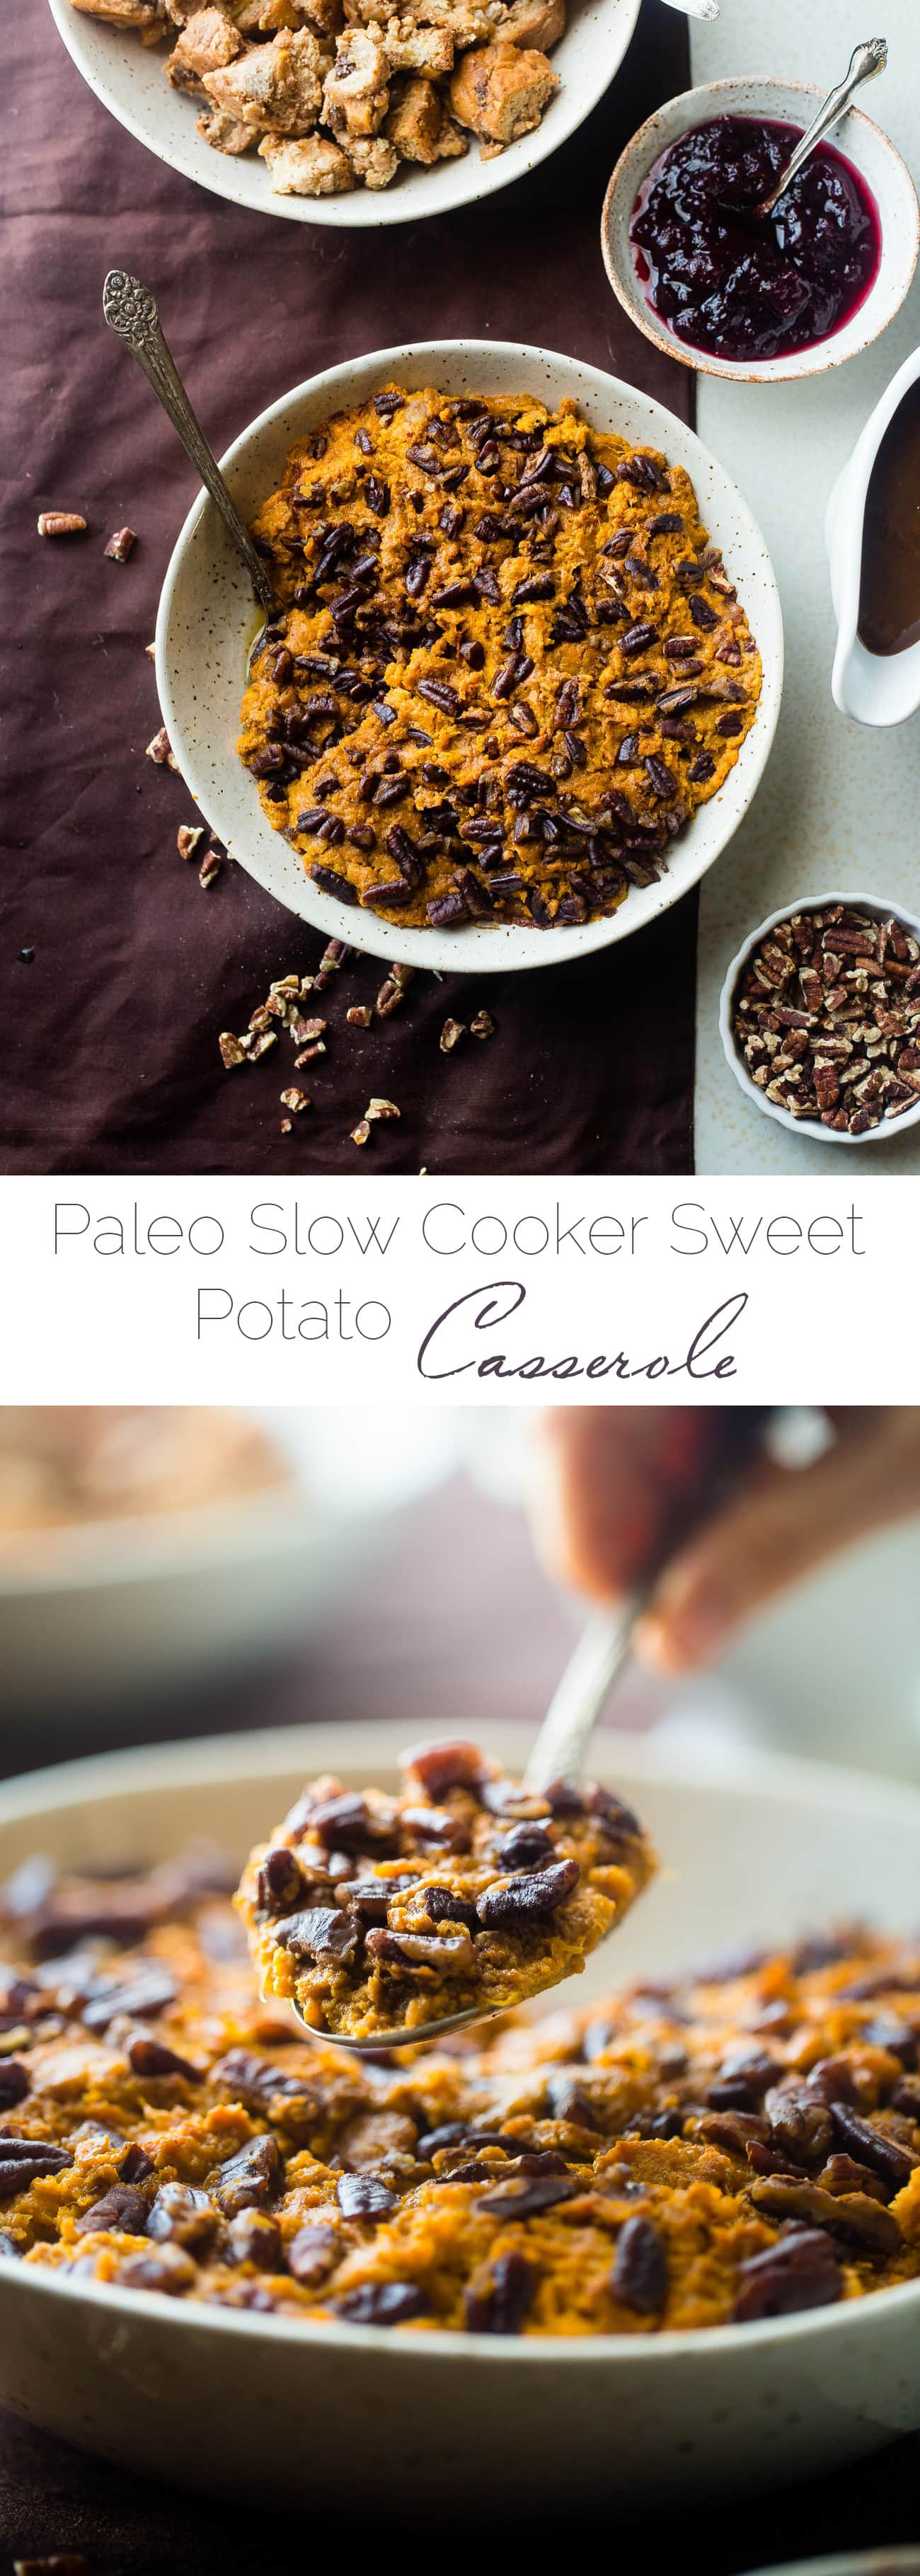 Slow Cooker Paleo Sweet Potato Casserole - Let the slow cooker do all the work for you this Thanksgiving with this quick and easy paleo sweet potato casserole! You won't even miss the marshmallows! | Foodfaithfitness.com | @FoodFaithFit